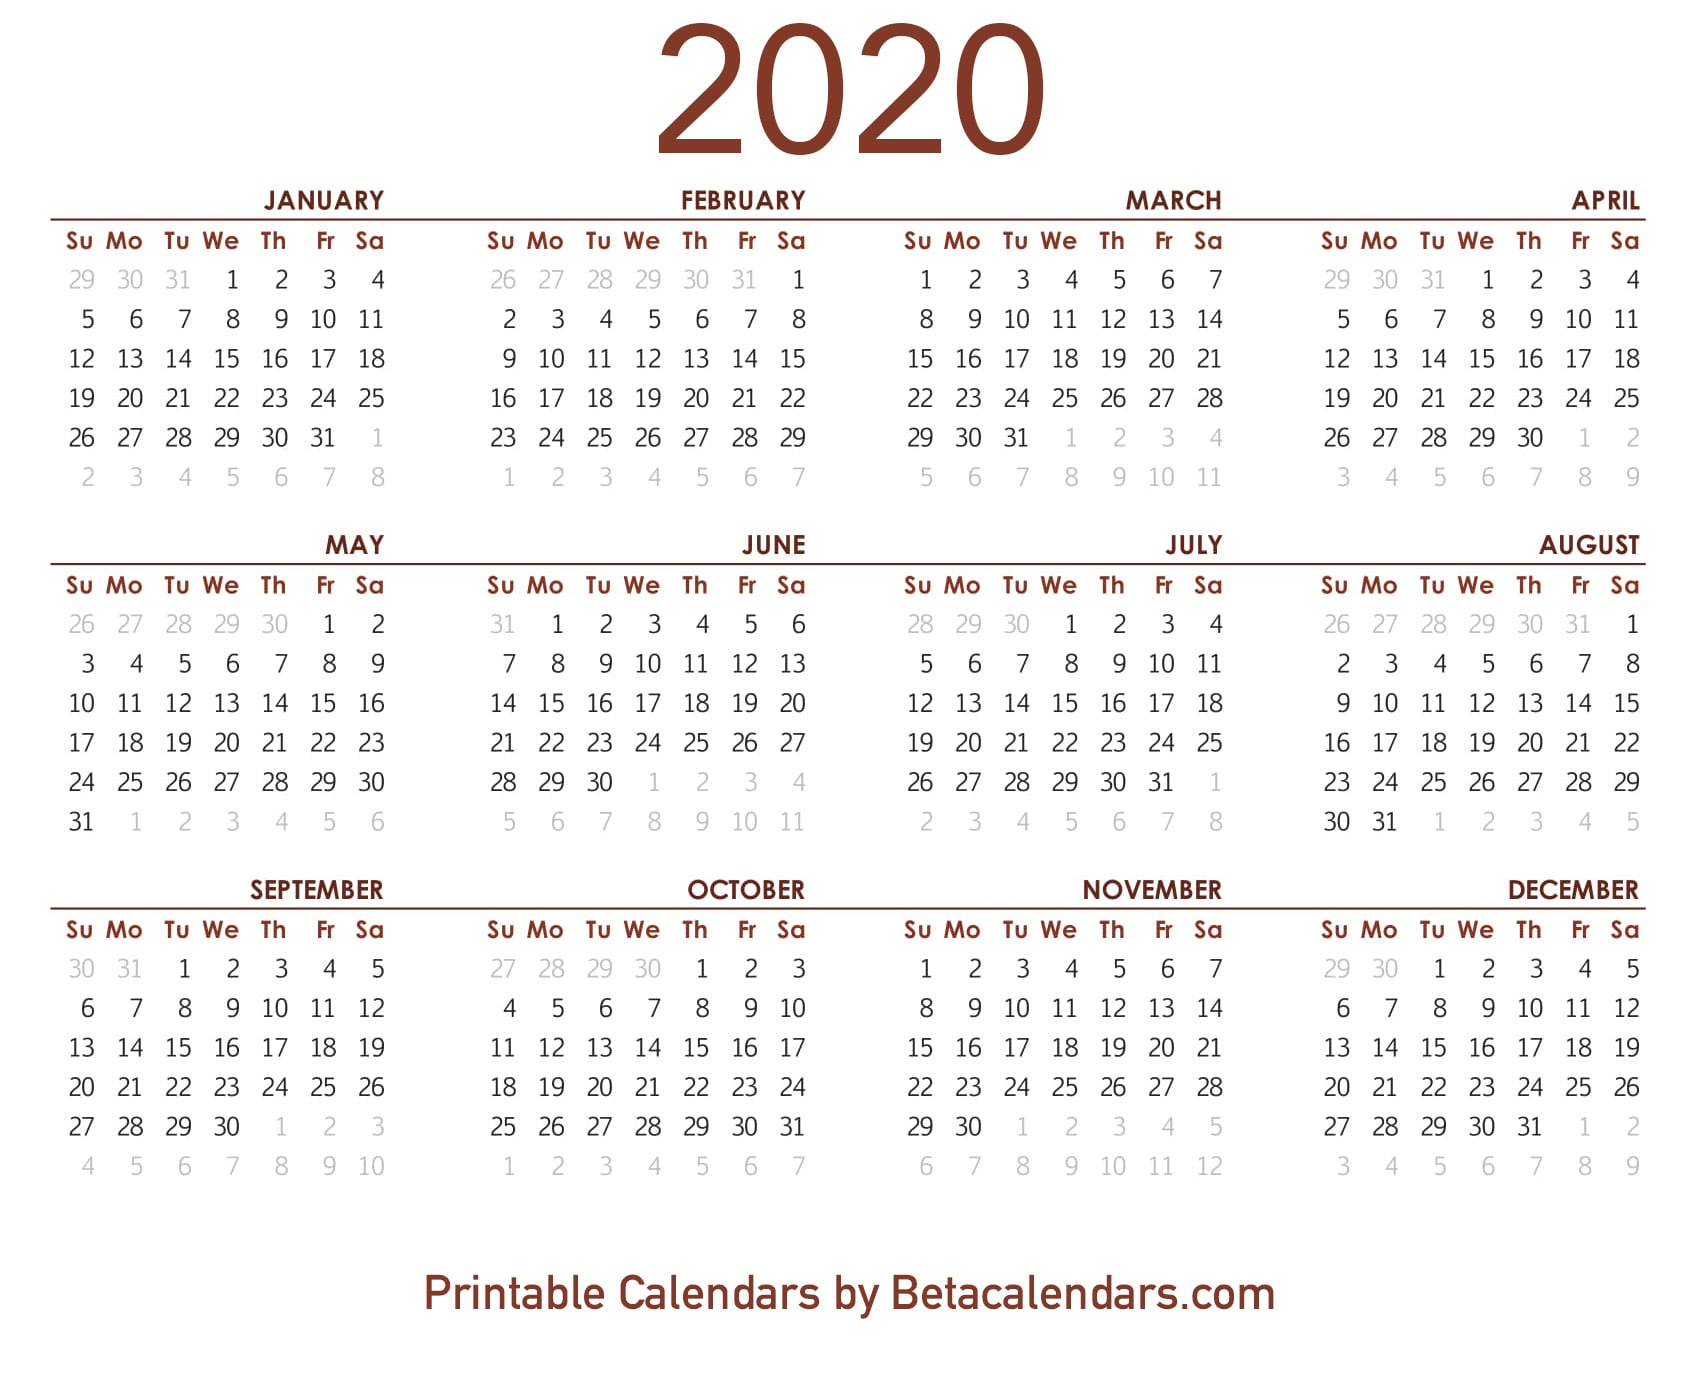 2020 Calendar - Beta Calendars in 2020 Calendars To Fill In